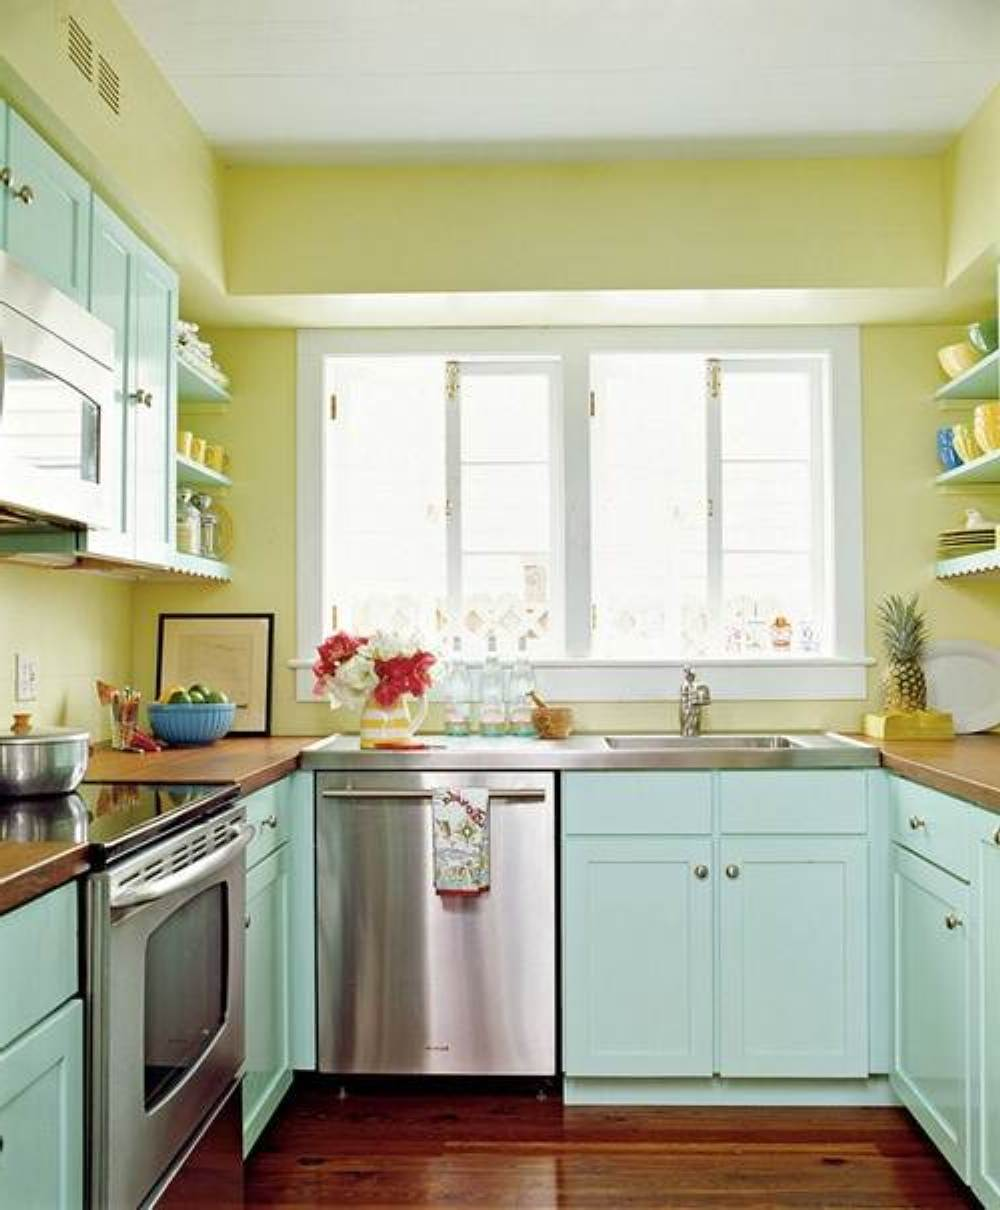 57+ Small Kitchen Ideas That Prove Size Doesn't Matter ... on Small Kitchen Ideas  id=27158